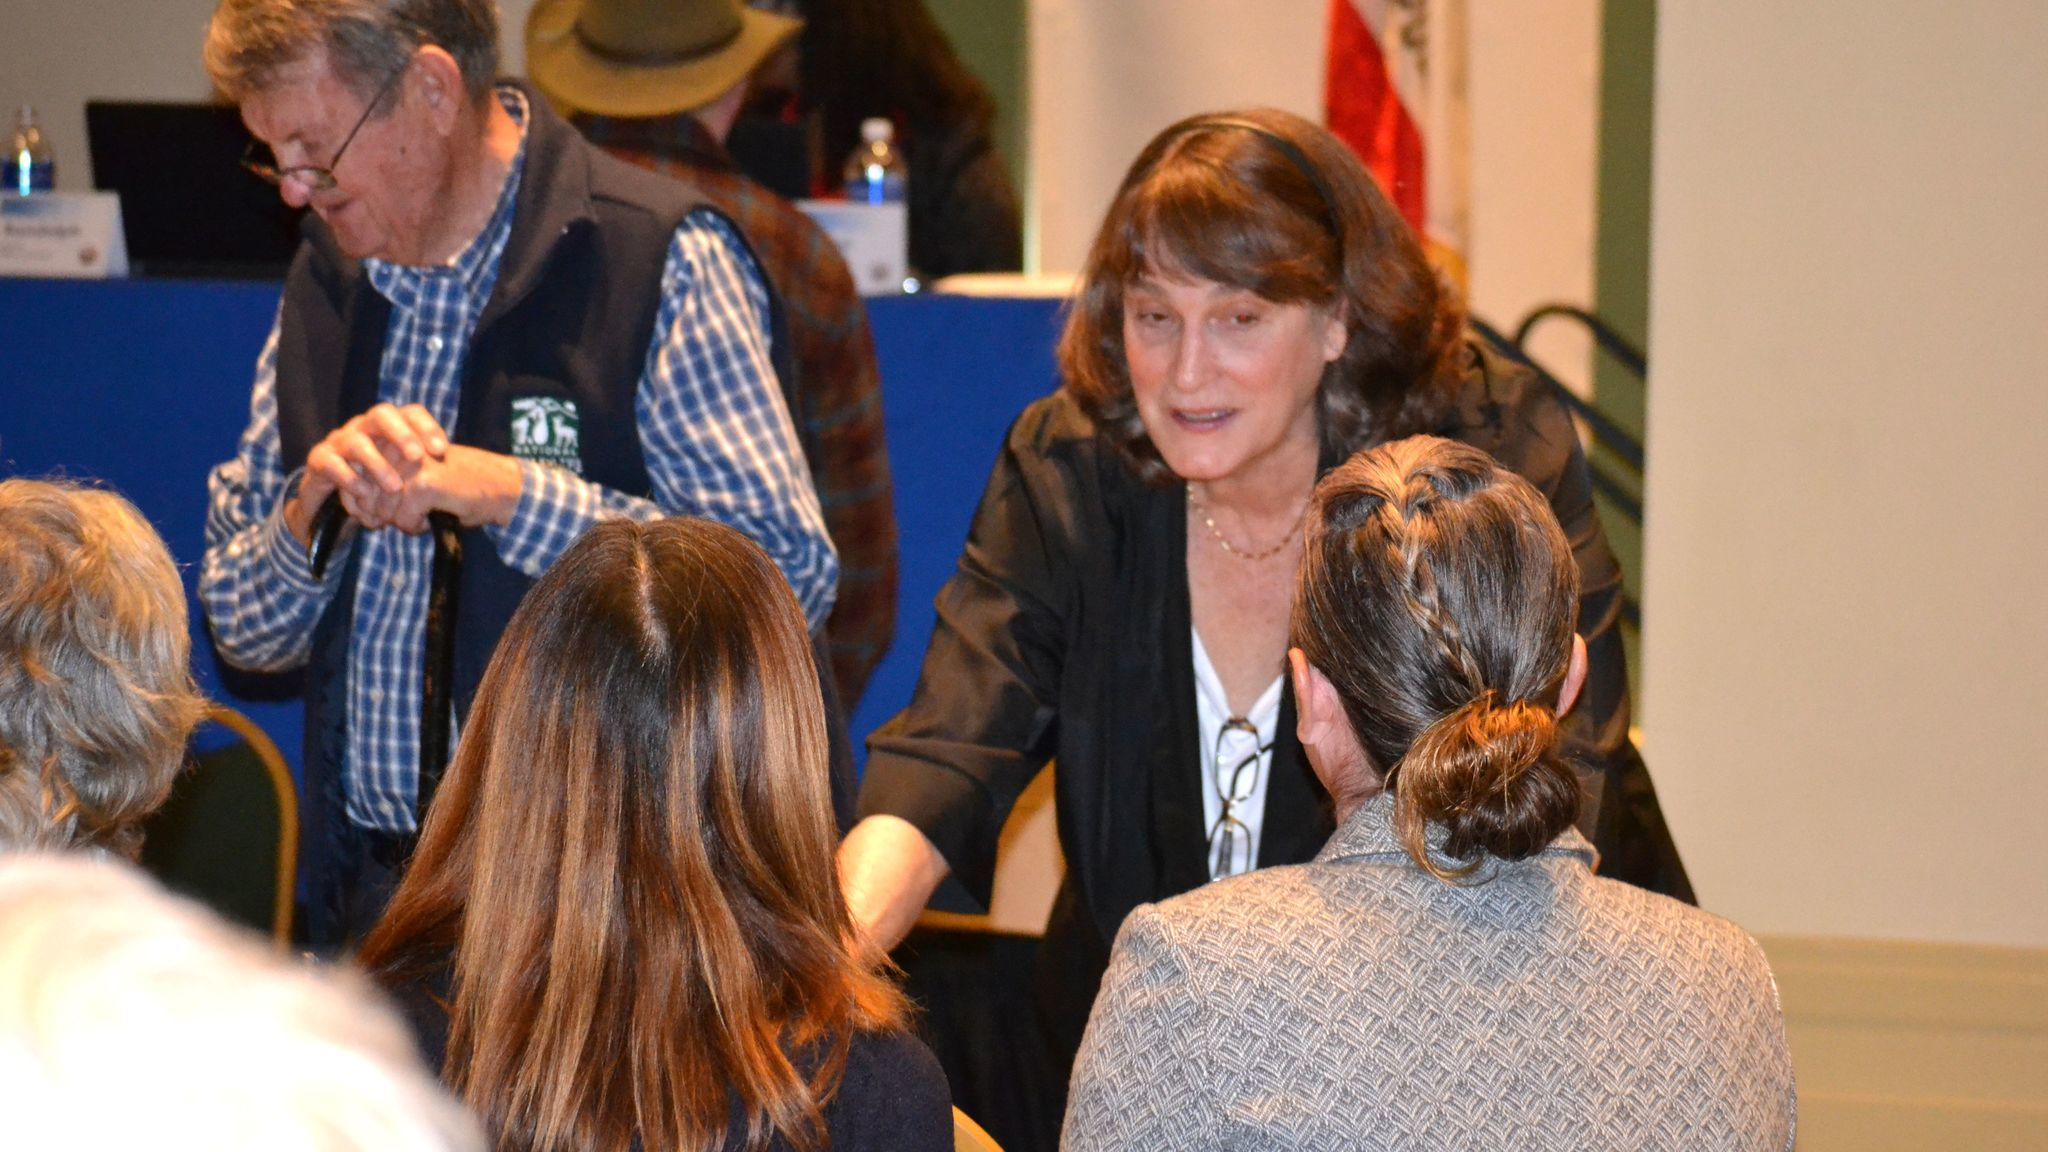 Diane Conklin, spokesperson for the Mussey Grade Road Alliance, talks with attendees during a break at the public participation hearing.